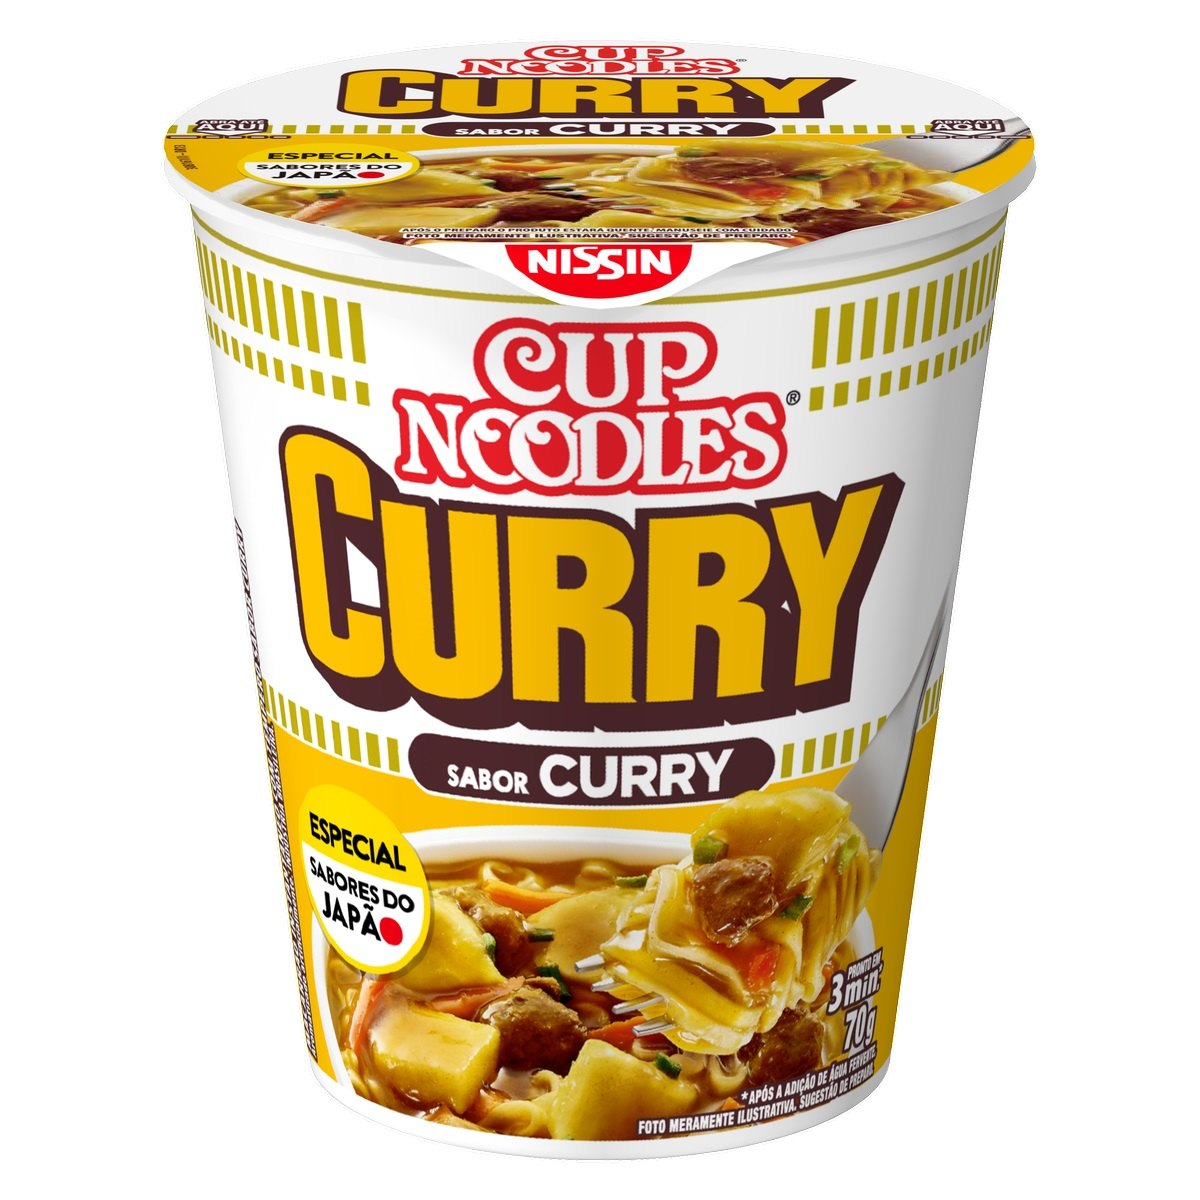 NISSIN CUP NOODLES CURRY 1X70G(24)